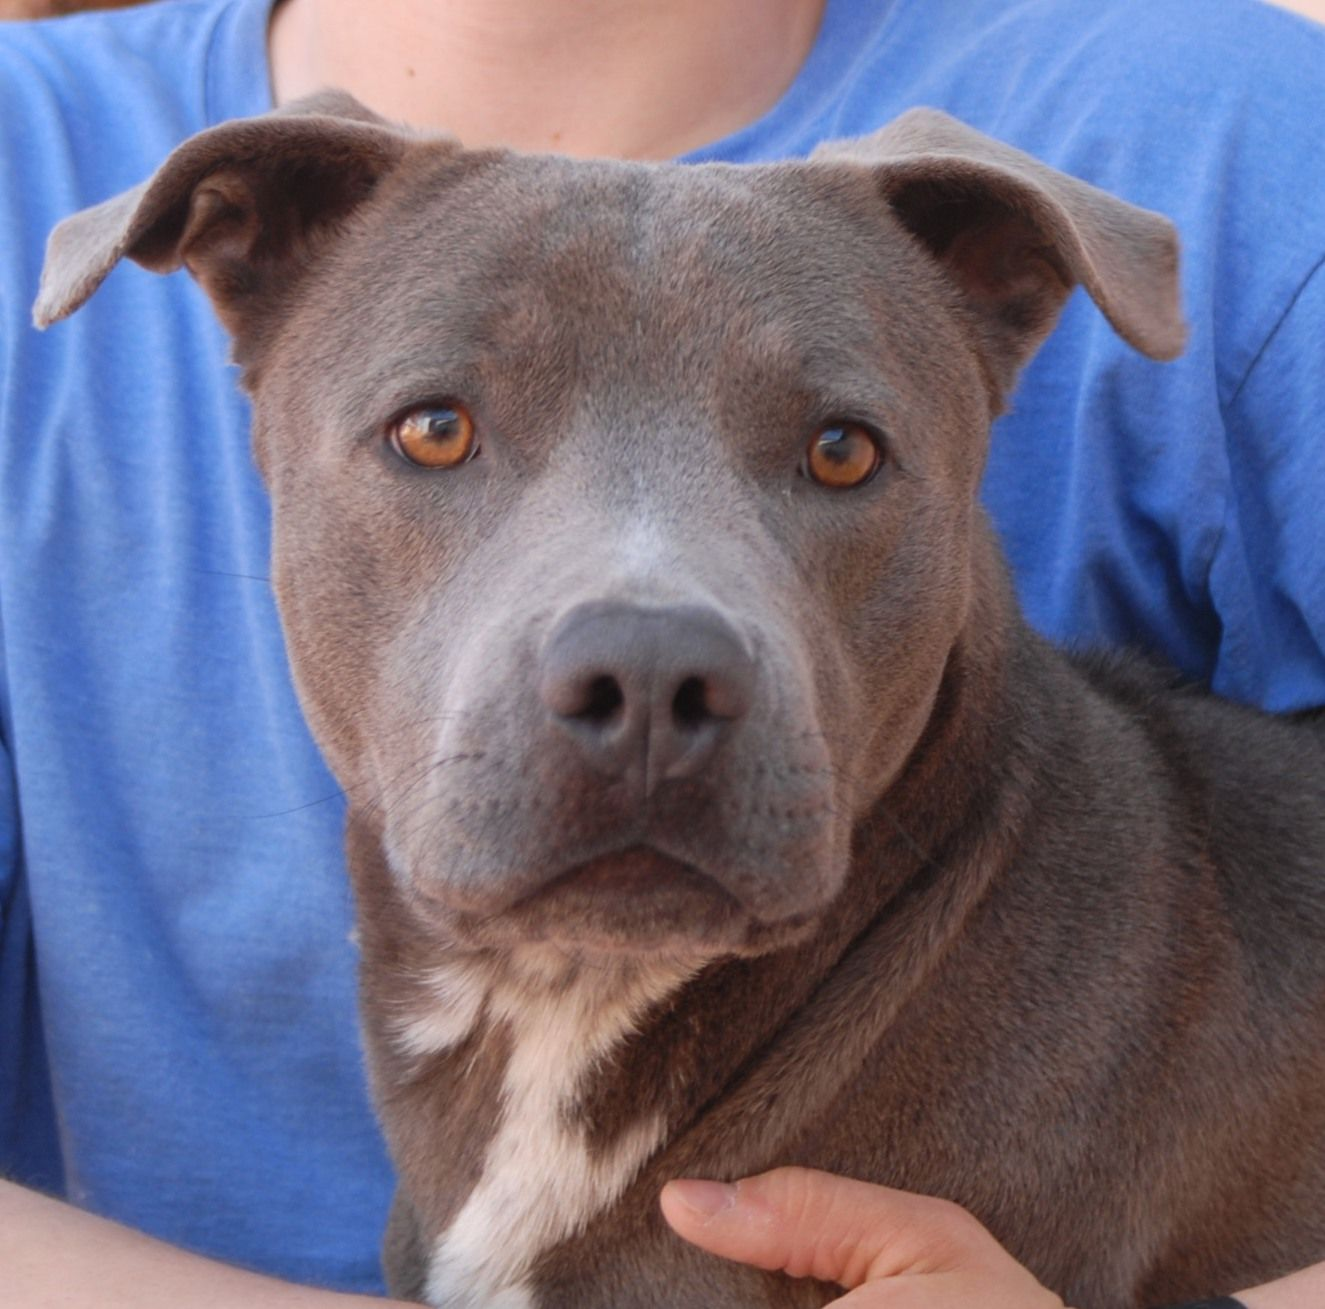 Merlot is a youngster with tremendous loving potential. With those he trusts, he shines! But Merlot is worried that strangers will hurt him. This is understandable -- he was found terrified in an abandoned, foreclosed home, abused and neglected. Merlot is a Heinz 57 with Bully & Sporting breeds, 1 year of age and neutered, and debuting for adoption today at Nevada SPCA (www.nevadaspca.org). Please help find Merlot a hero so he never again knows the betrayal of his trust and innocence.